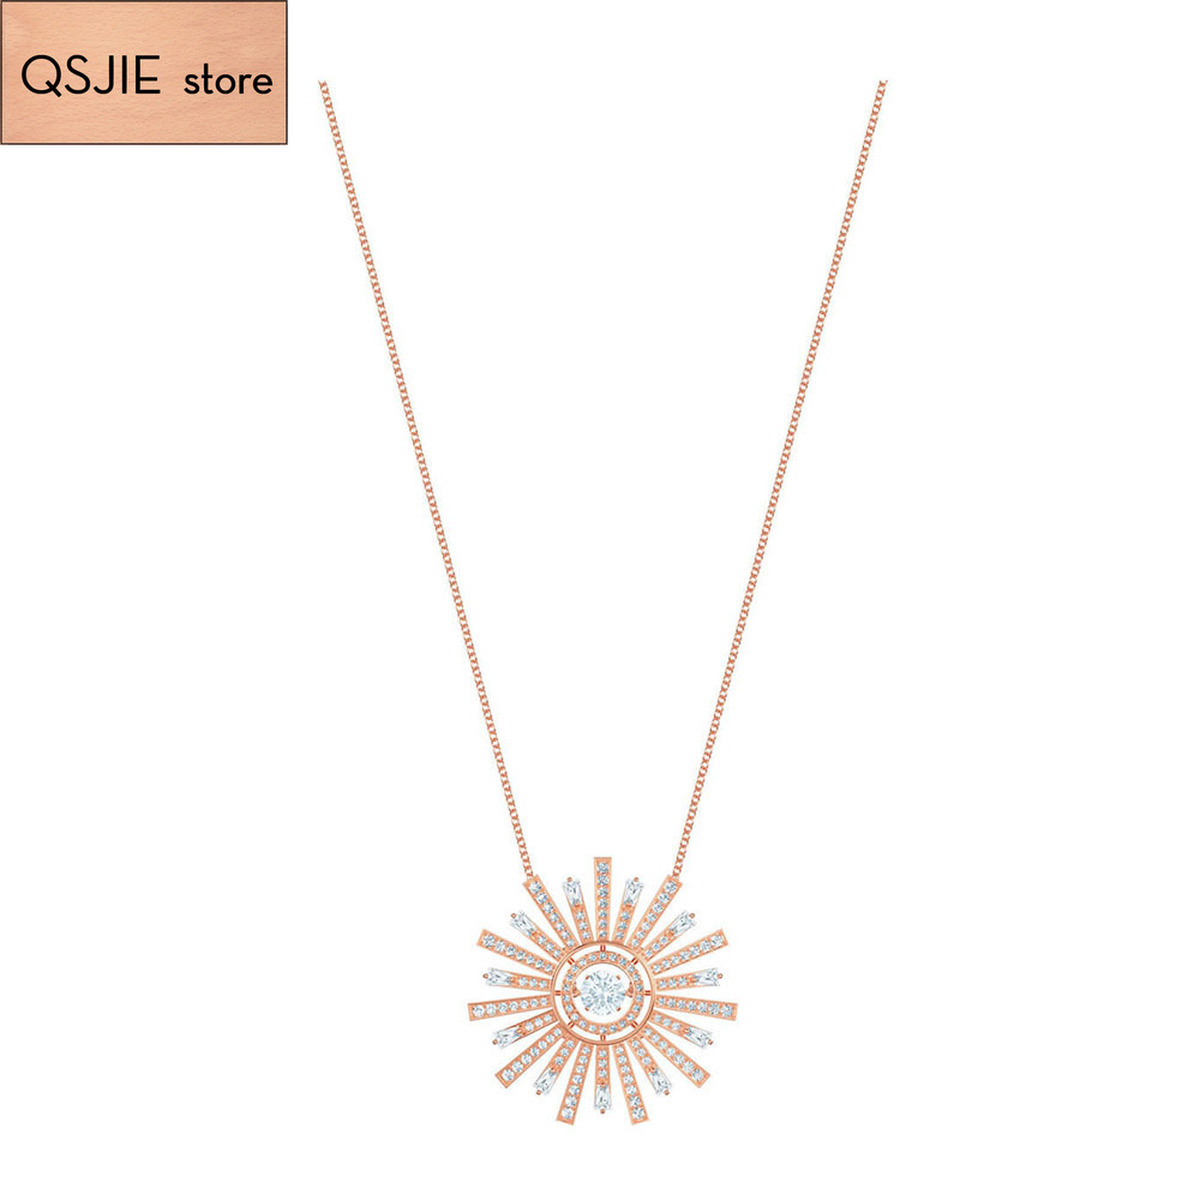 QSJIE High quality SWA. Fashionable, fresh and shiny crystal luxury jewelry solar cocktail Necklace Glamorous fashion jewelry